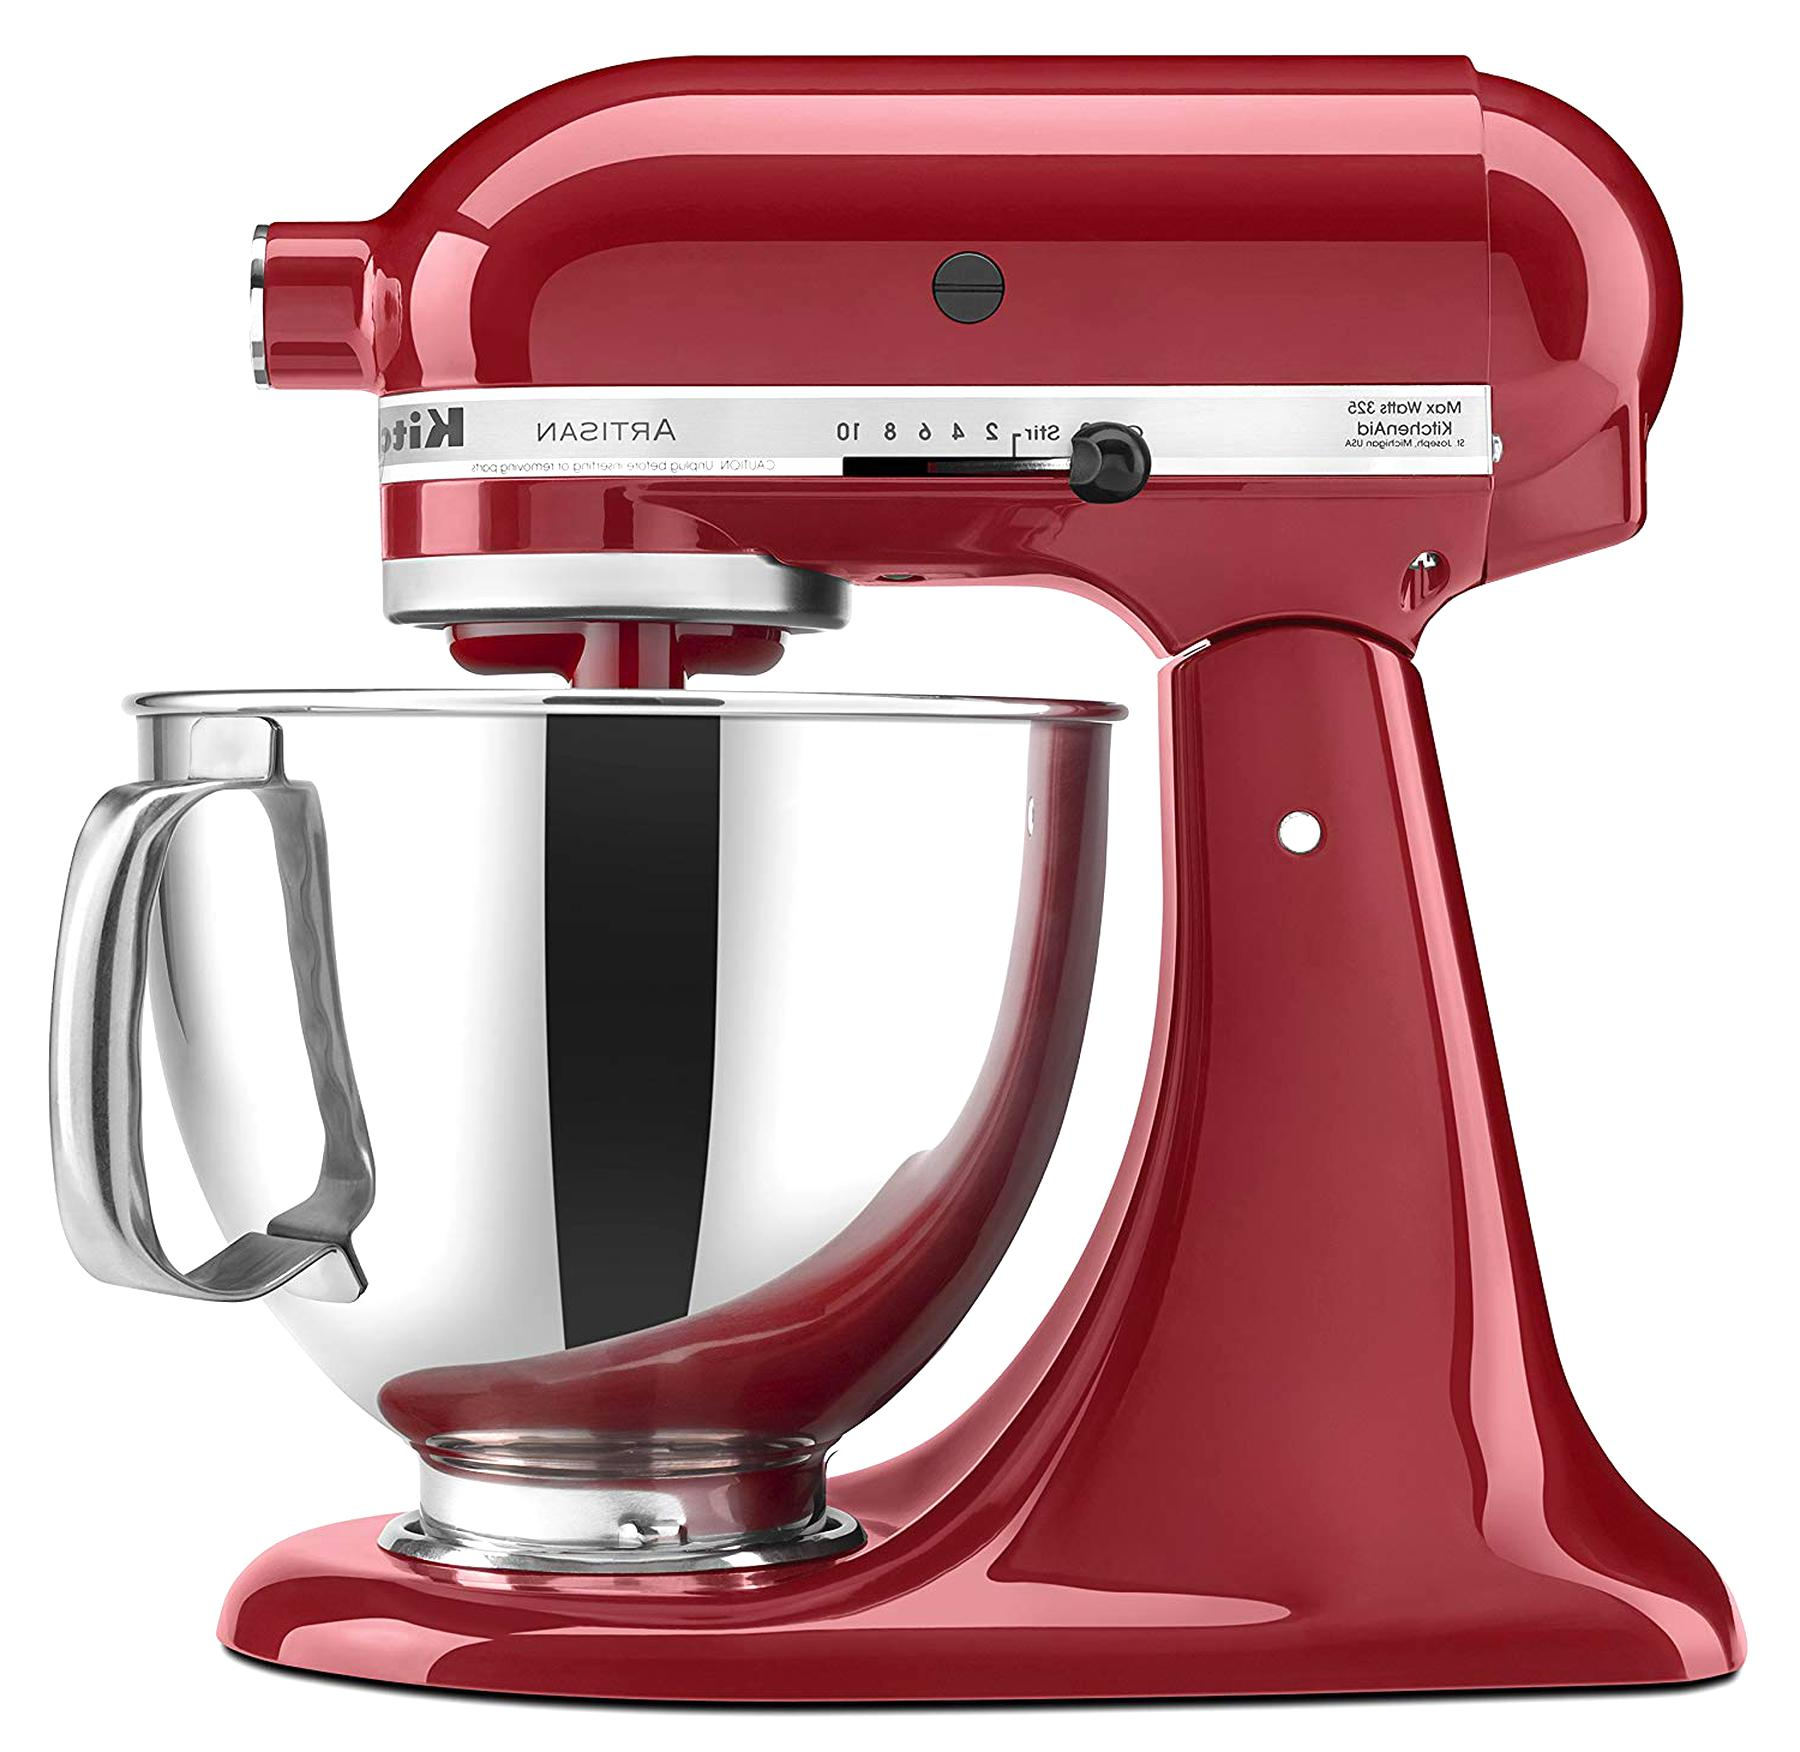 Kitchenaid Mixer For Sale Only 2 Left At 75